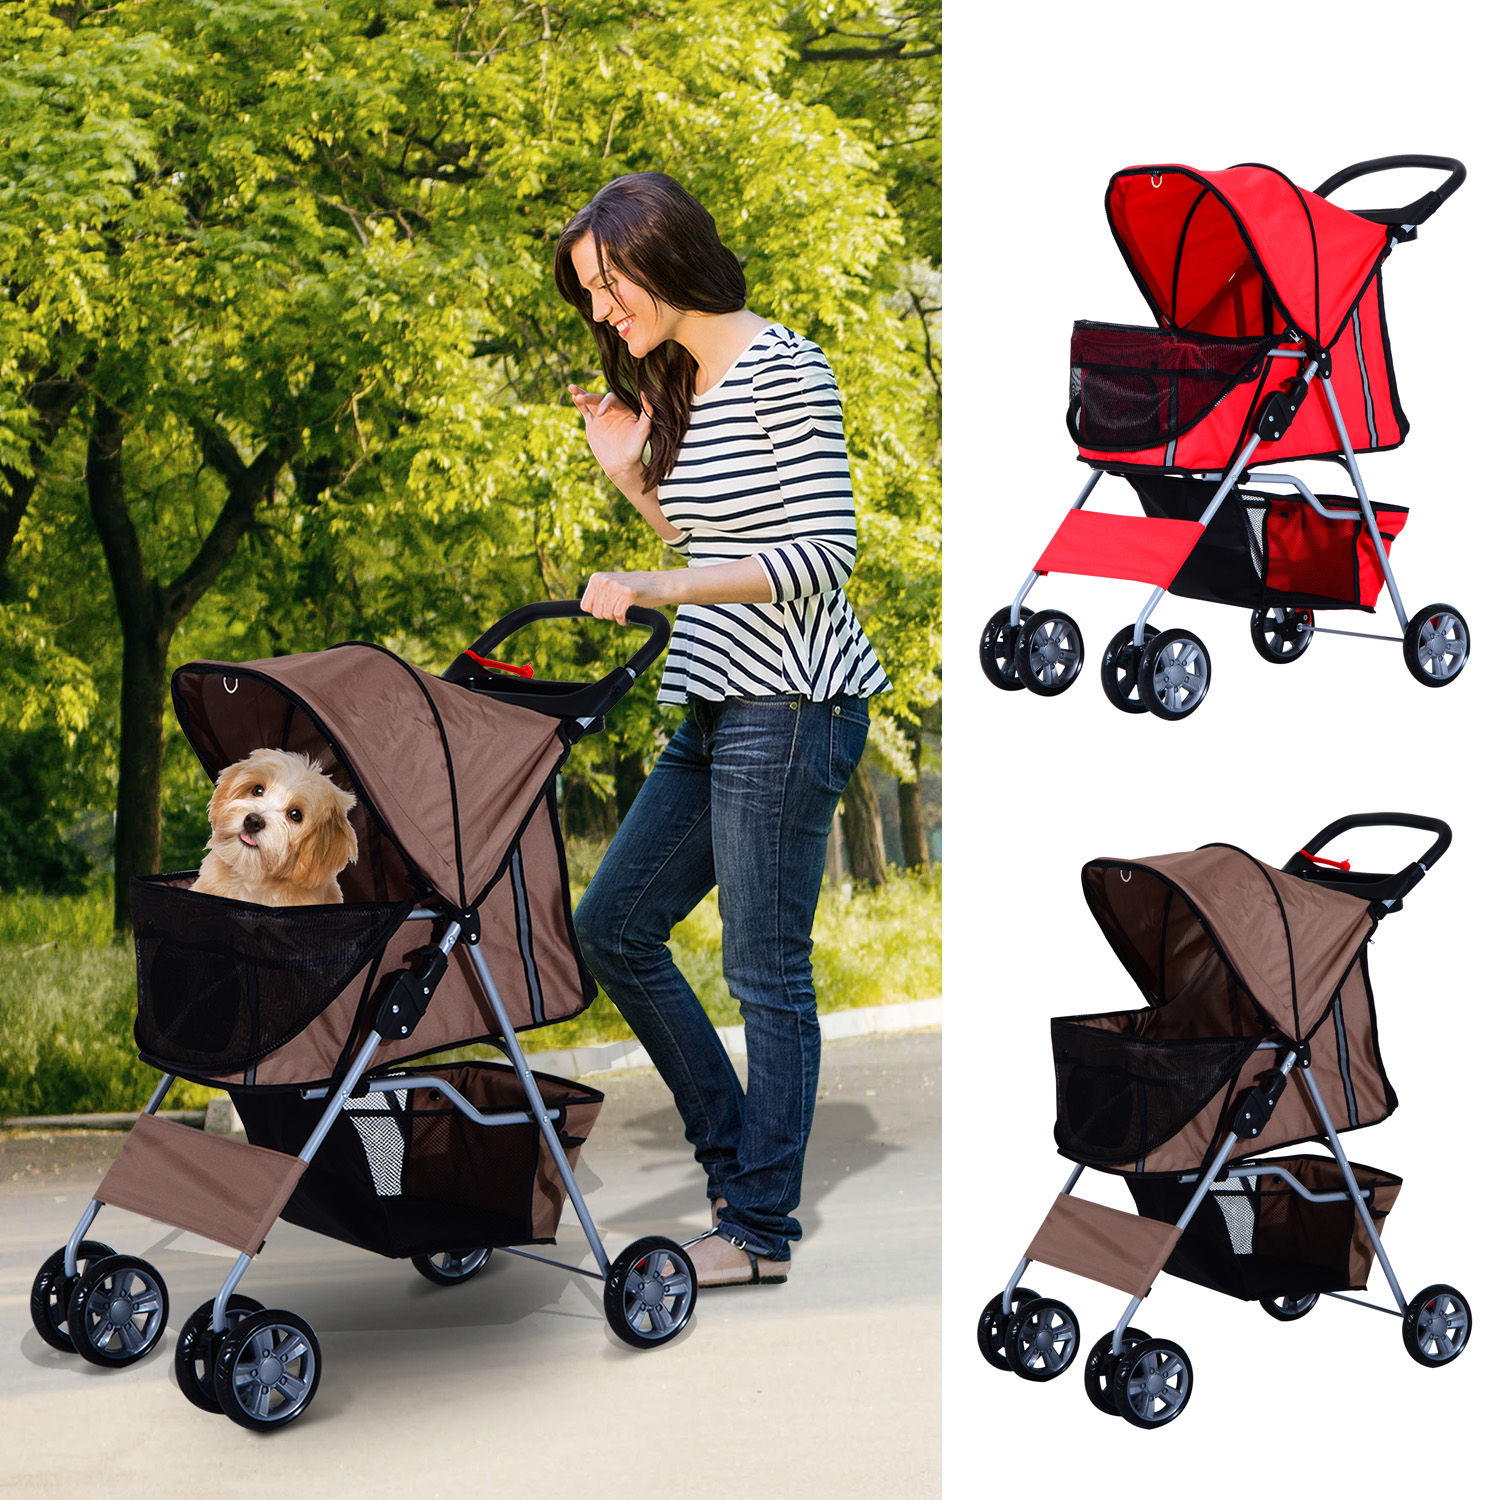 Oxford Pet Stroller Ebay Details About Pet Puppy Cat Dog Travel Stroller Pushchair Jogger Carrier Awivel Wheels Buggy